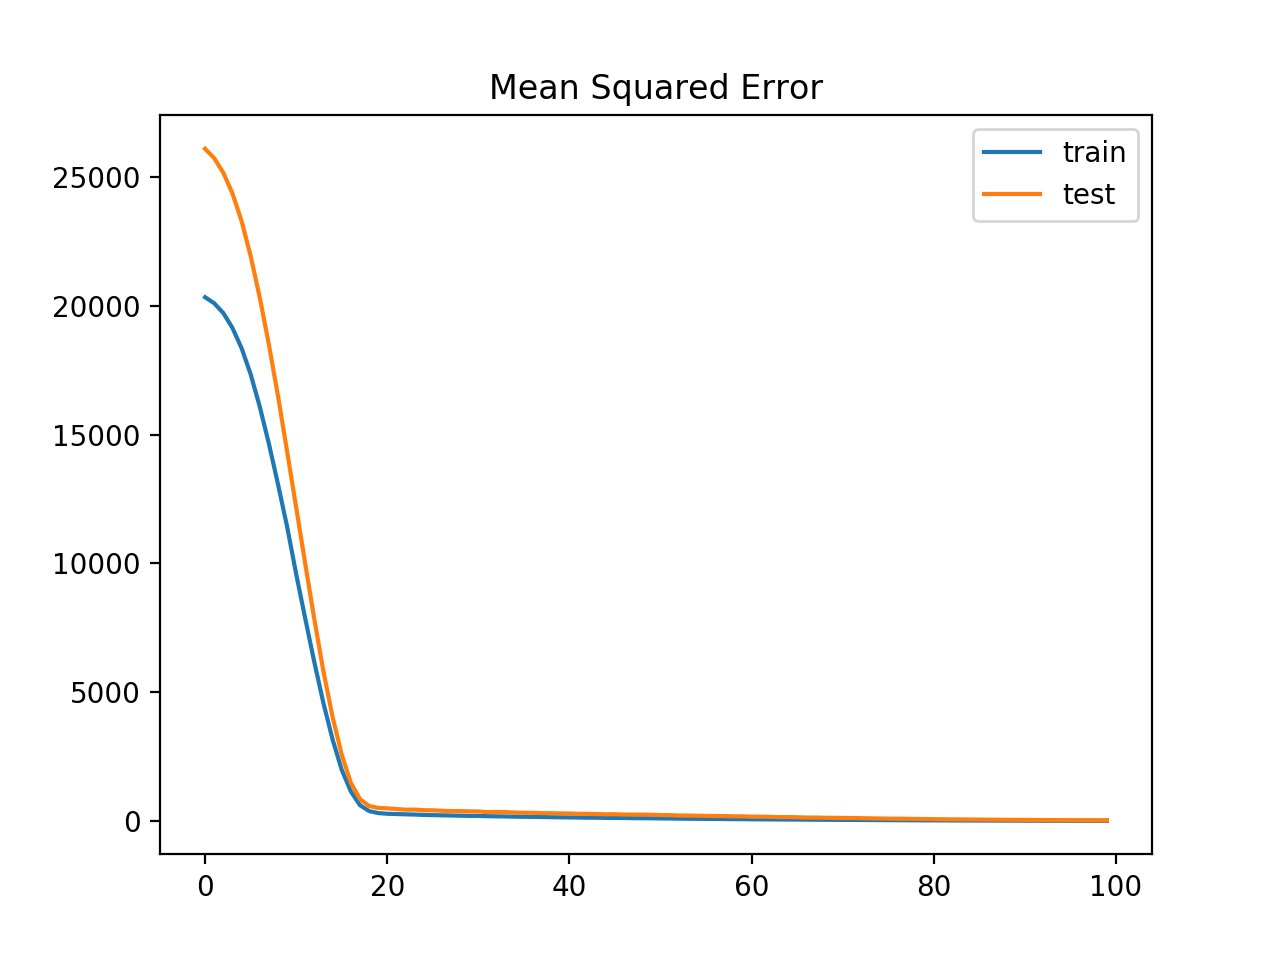 Line Plot of Mean Squared Error Loss for the Train (blue) and Test (orange) Datasets Over Training Epochs With Gradient Norm Scaling